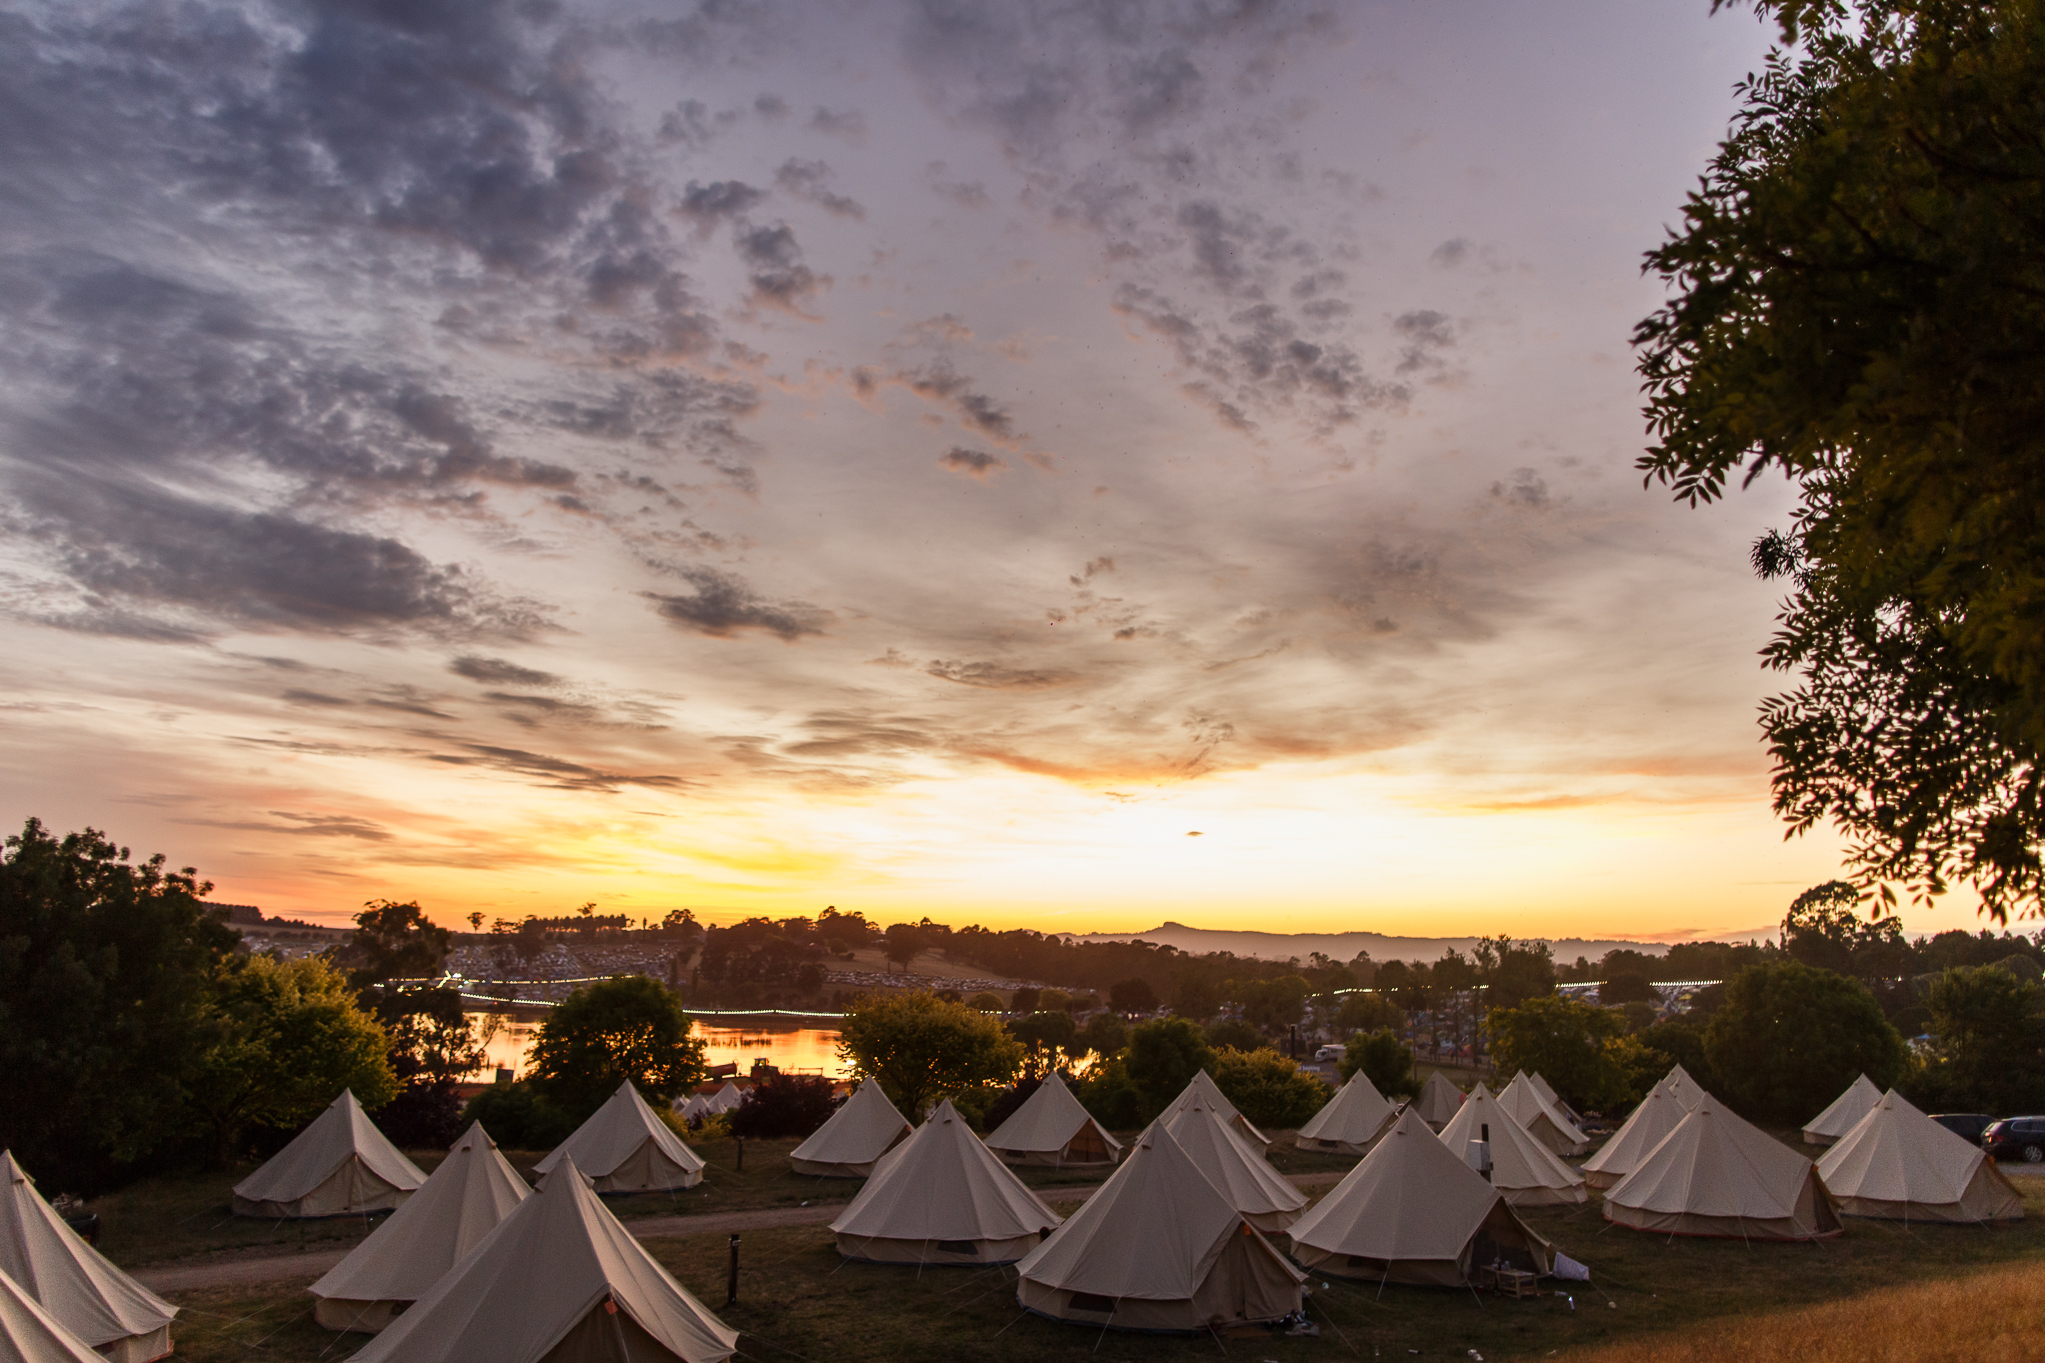 Rows of white tents at sunset overlooking the festival